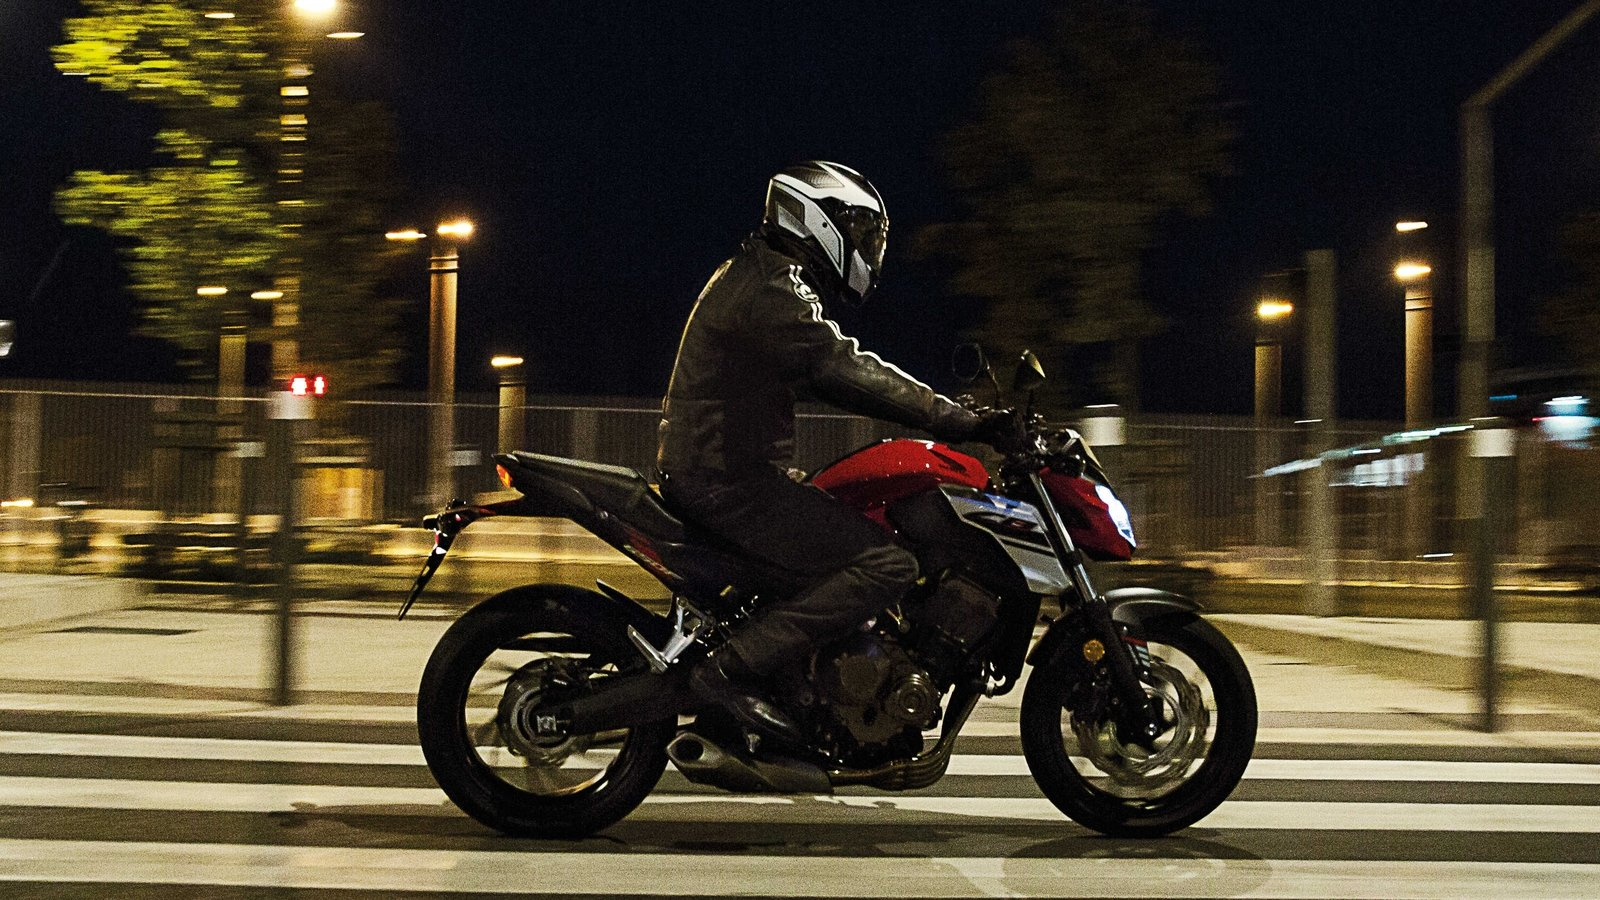 2018 Honda Cb650f  How Does It Stack Up With The Fz